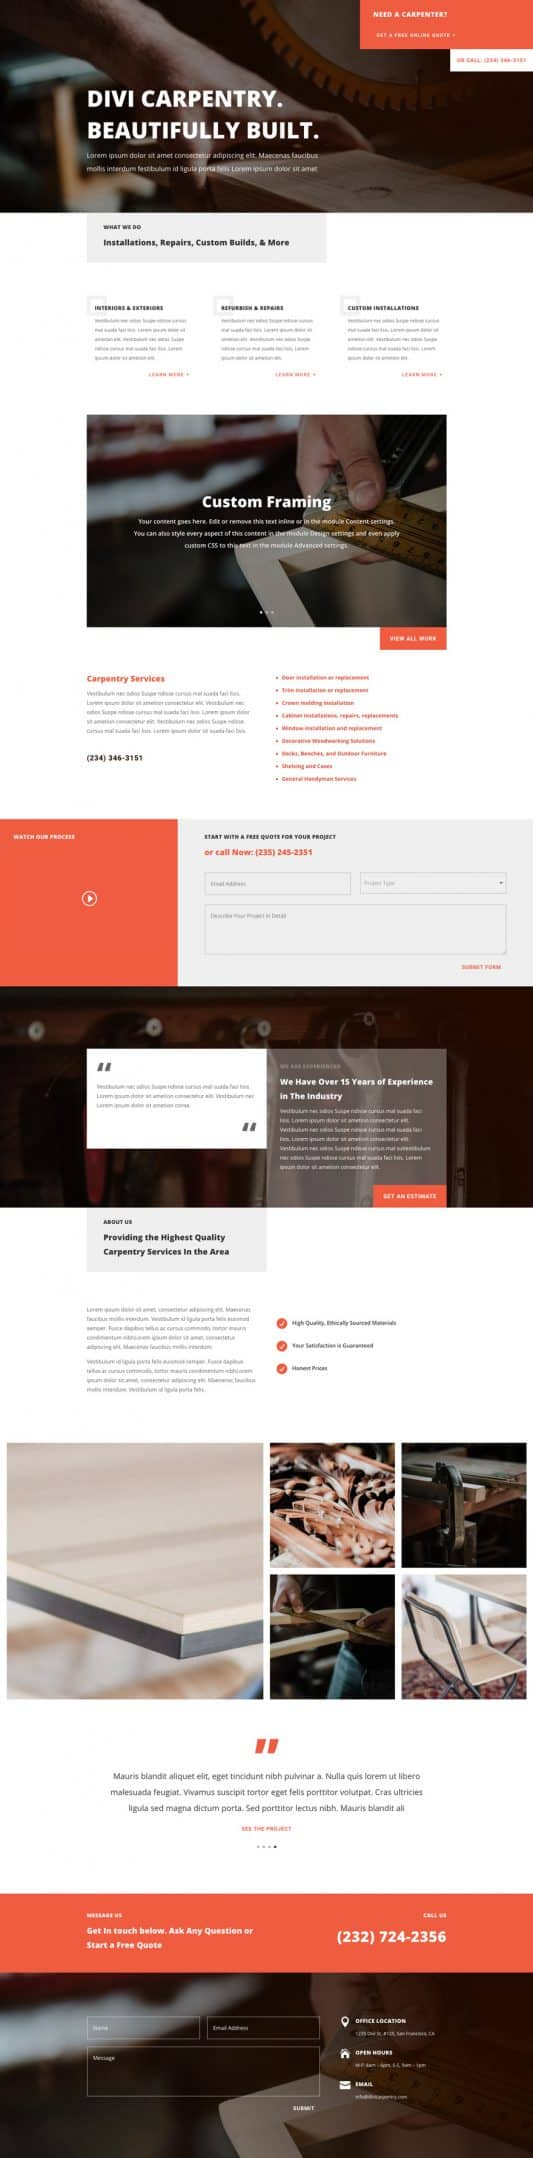 The Carpenter Page Style: Homepage Design 1